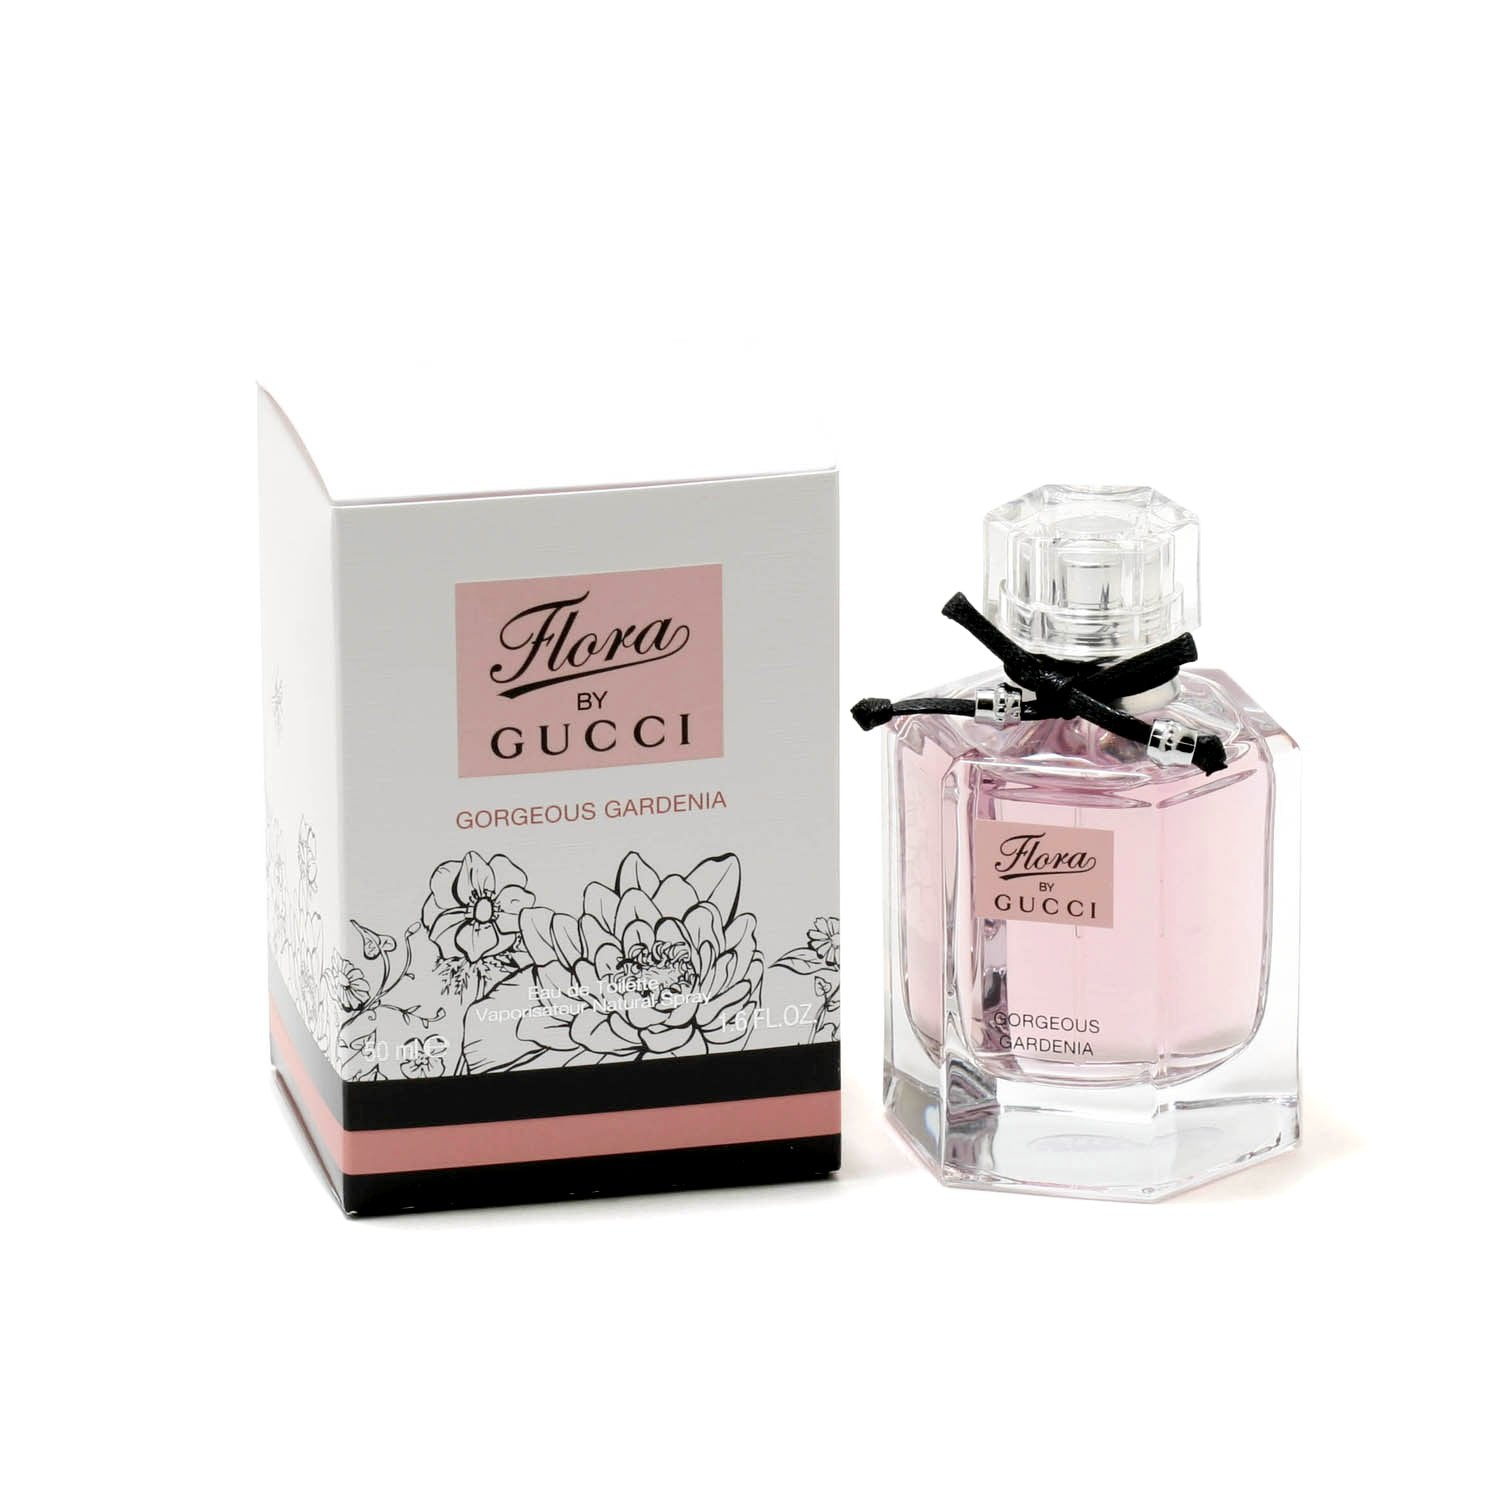 b5adc103c95 Perfume - GUCCI FLORA GORGEOUS GARDENIA FOR WOMEN - EAU DE TOILETTE SPRAY